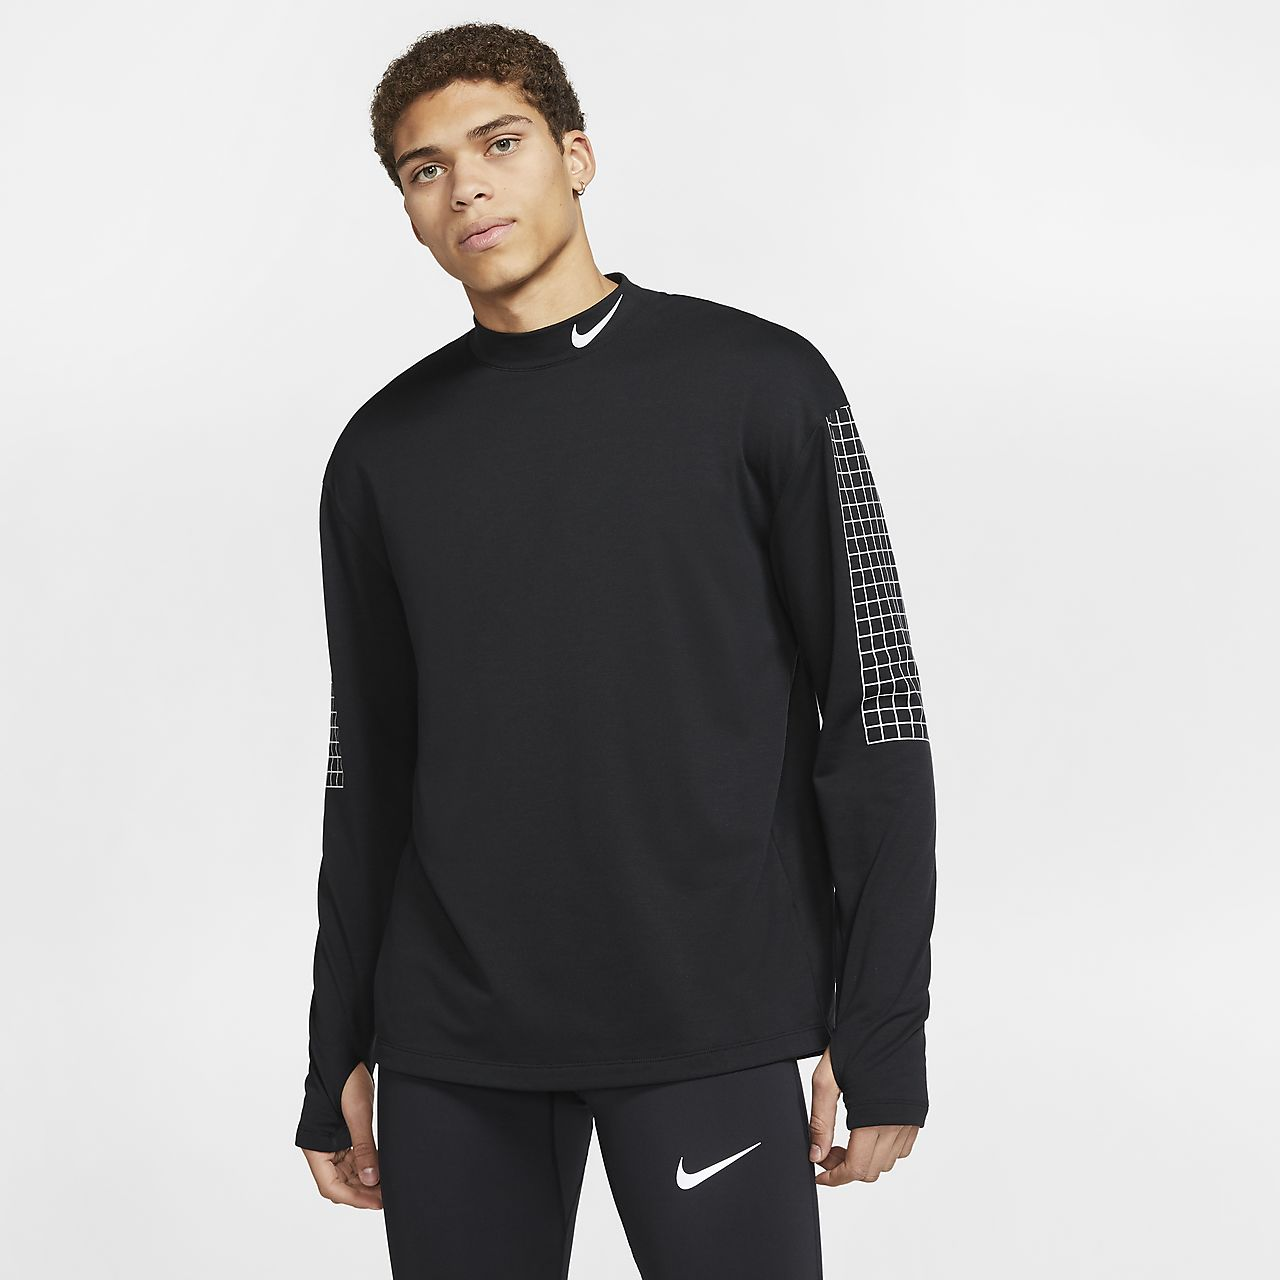 269490b7 Nike Dri-FIT Therma Sphere Element Men's Running Crew. Nike.com